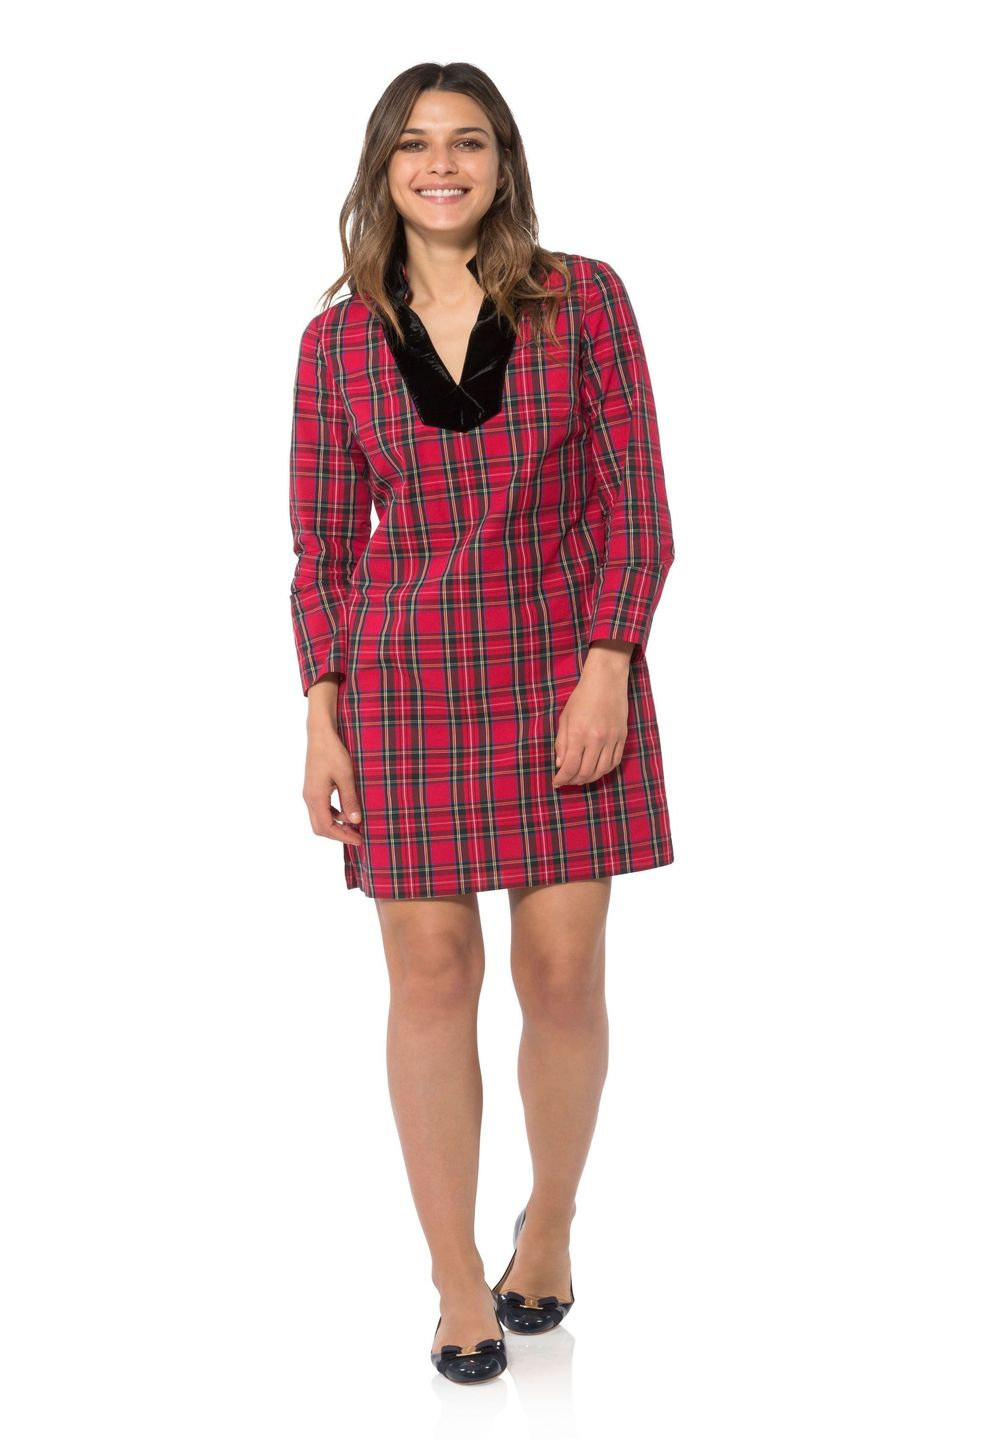 Sail To Sable Stretch Cotton Plaid Tunic Dress - Red Plaid